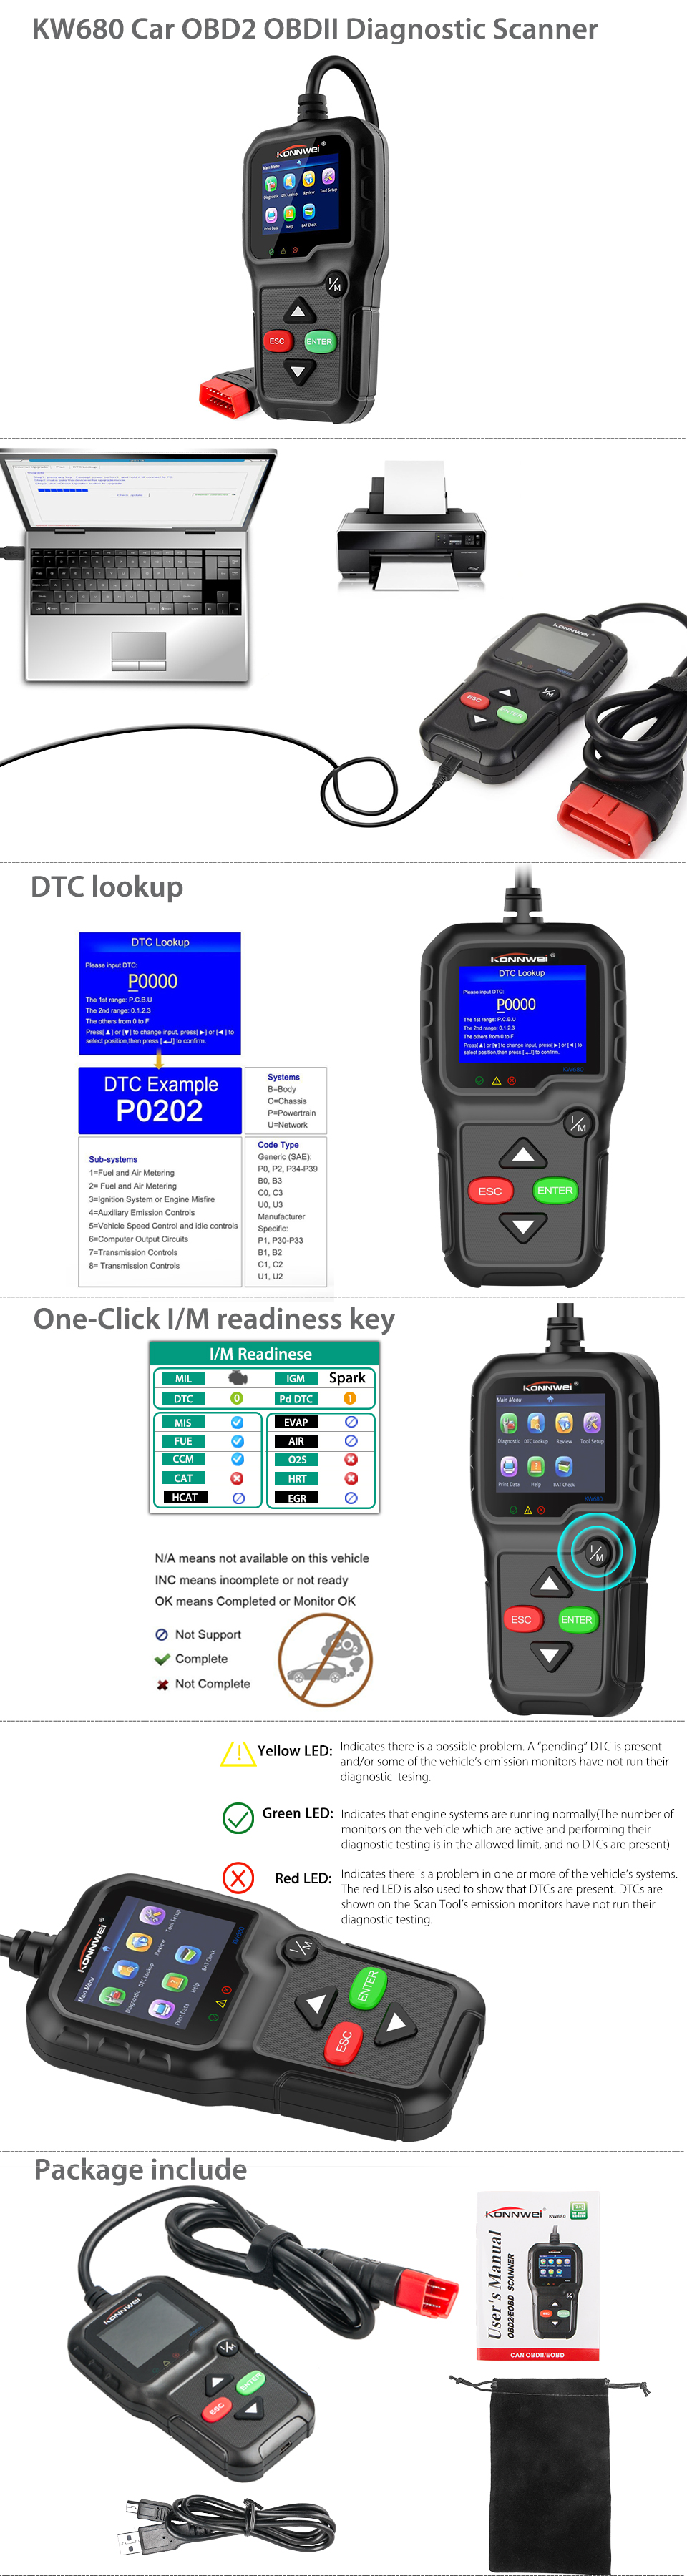 Details about OBD2 OBDII Automative Code Reader Scanner Check Engine Live  data Scan Tool KW680